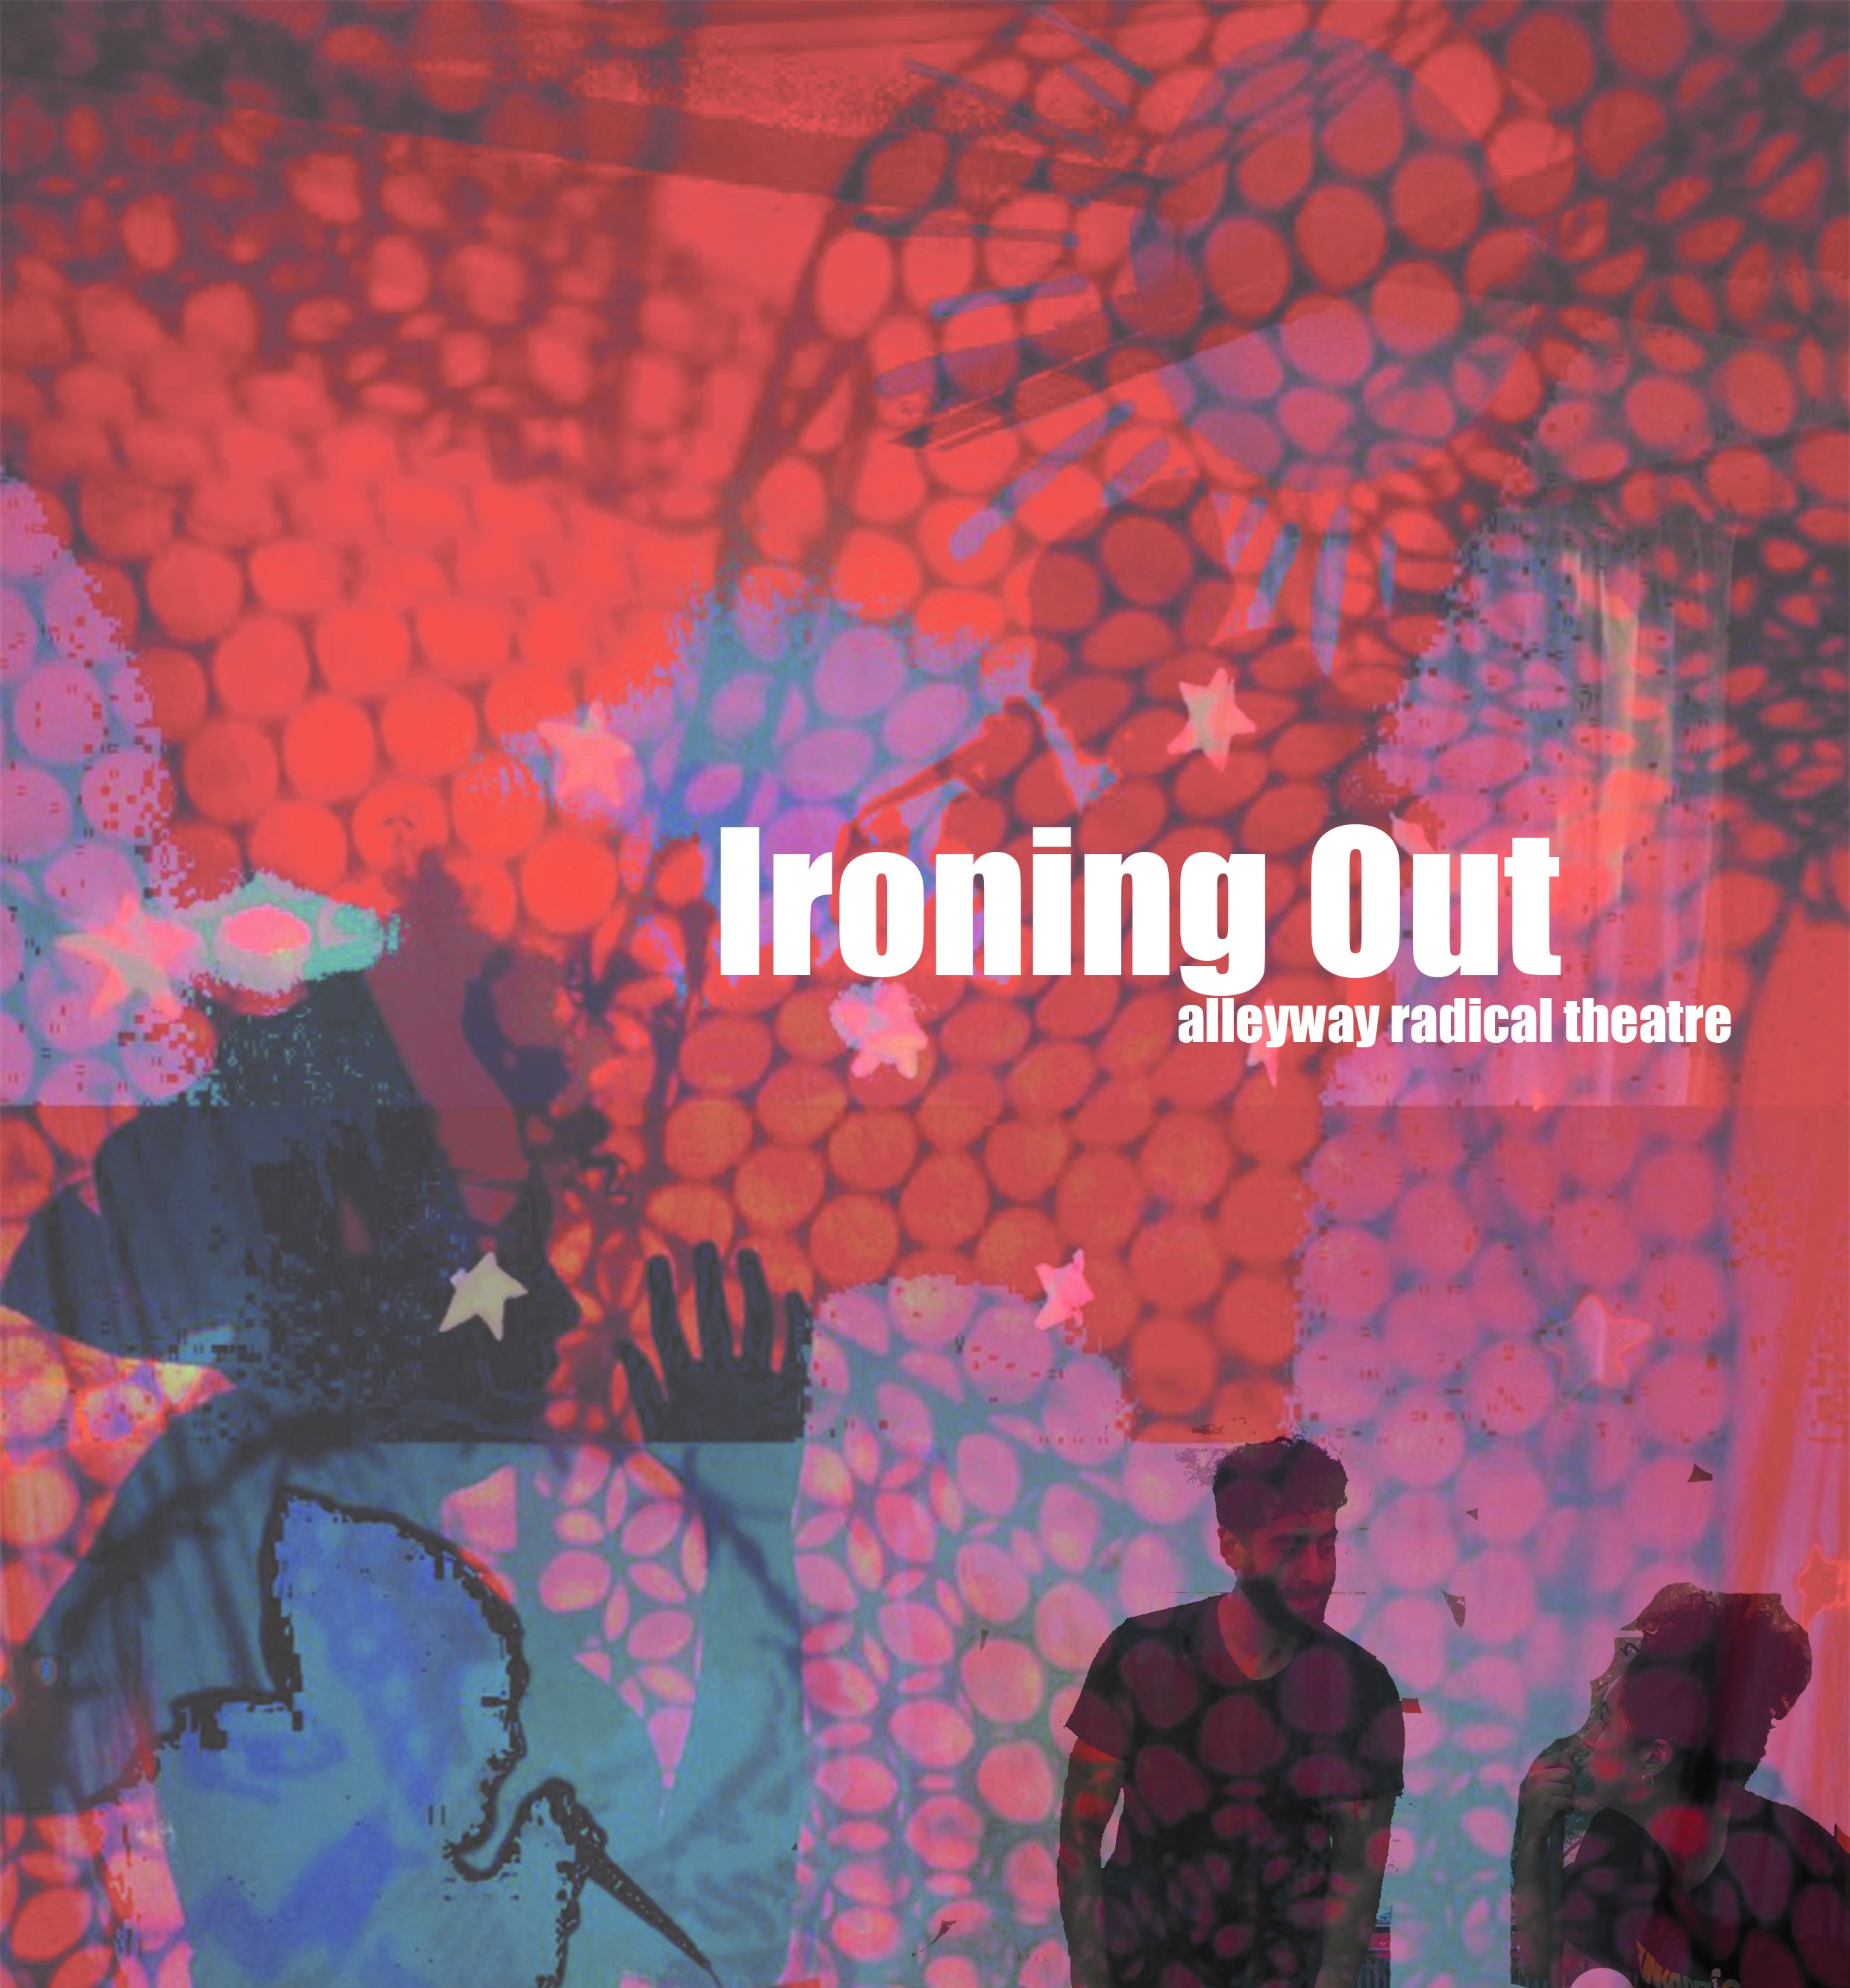 Ironing Out - An Open Rehearsal. Alleyway Radical & Theatre Deli - 18.30 - 21.30The Old Library, 39 Wells Way, SE5 0PXAlleyway Radical Theatre is a migrant and refugee-led theatre company, who work with shadow theatre and puppetry. Join Theatre Deli's current resident artists for an open rehearsal of scene sharings, discussion, music and moreFREE with suggested donation - Book here